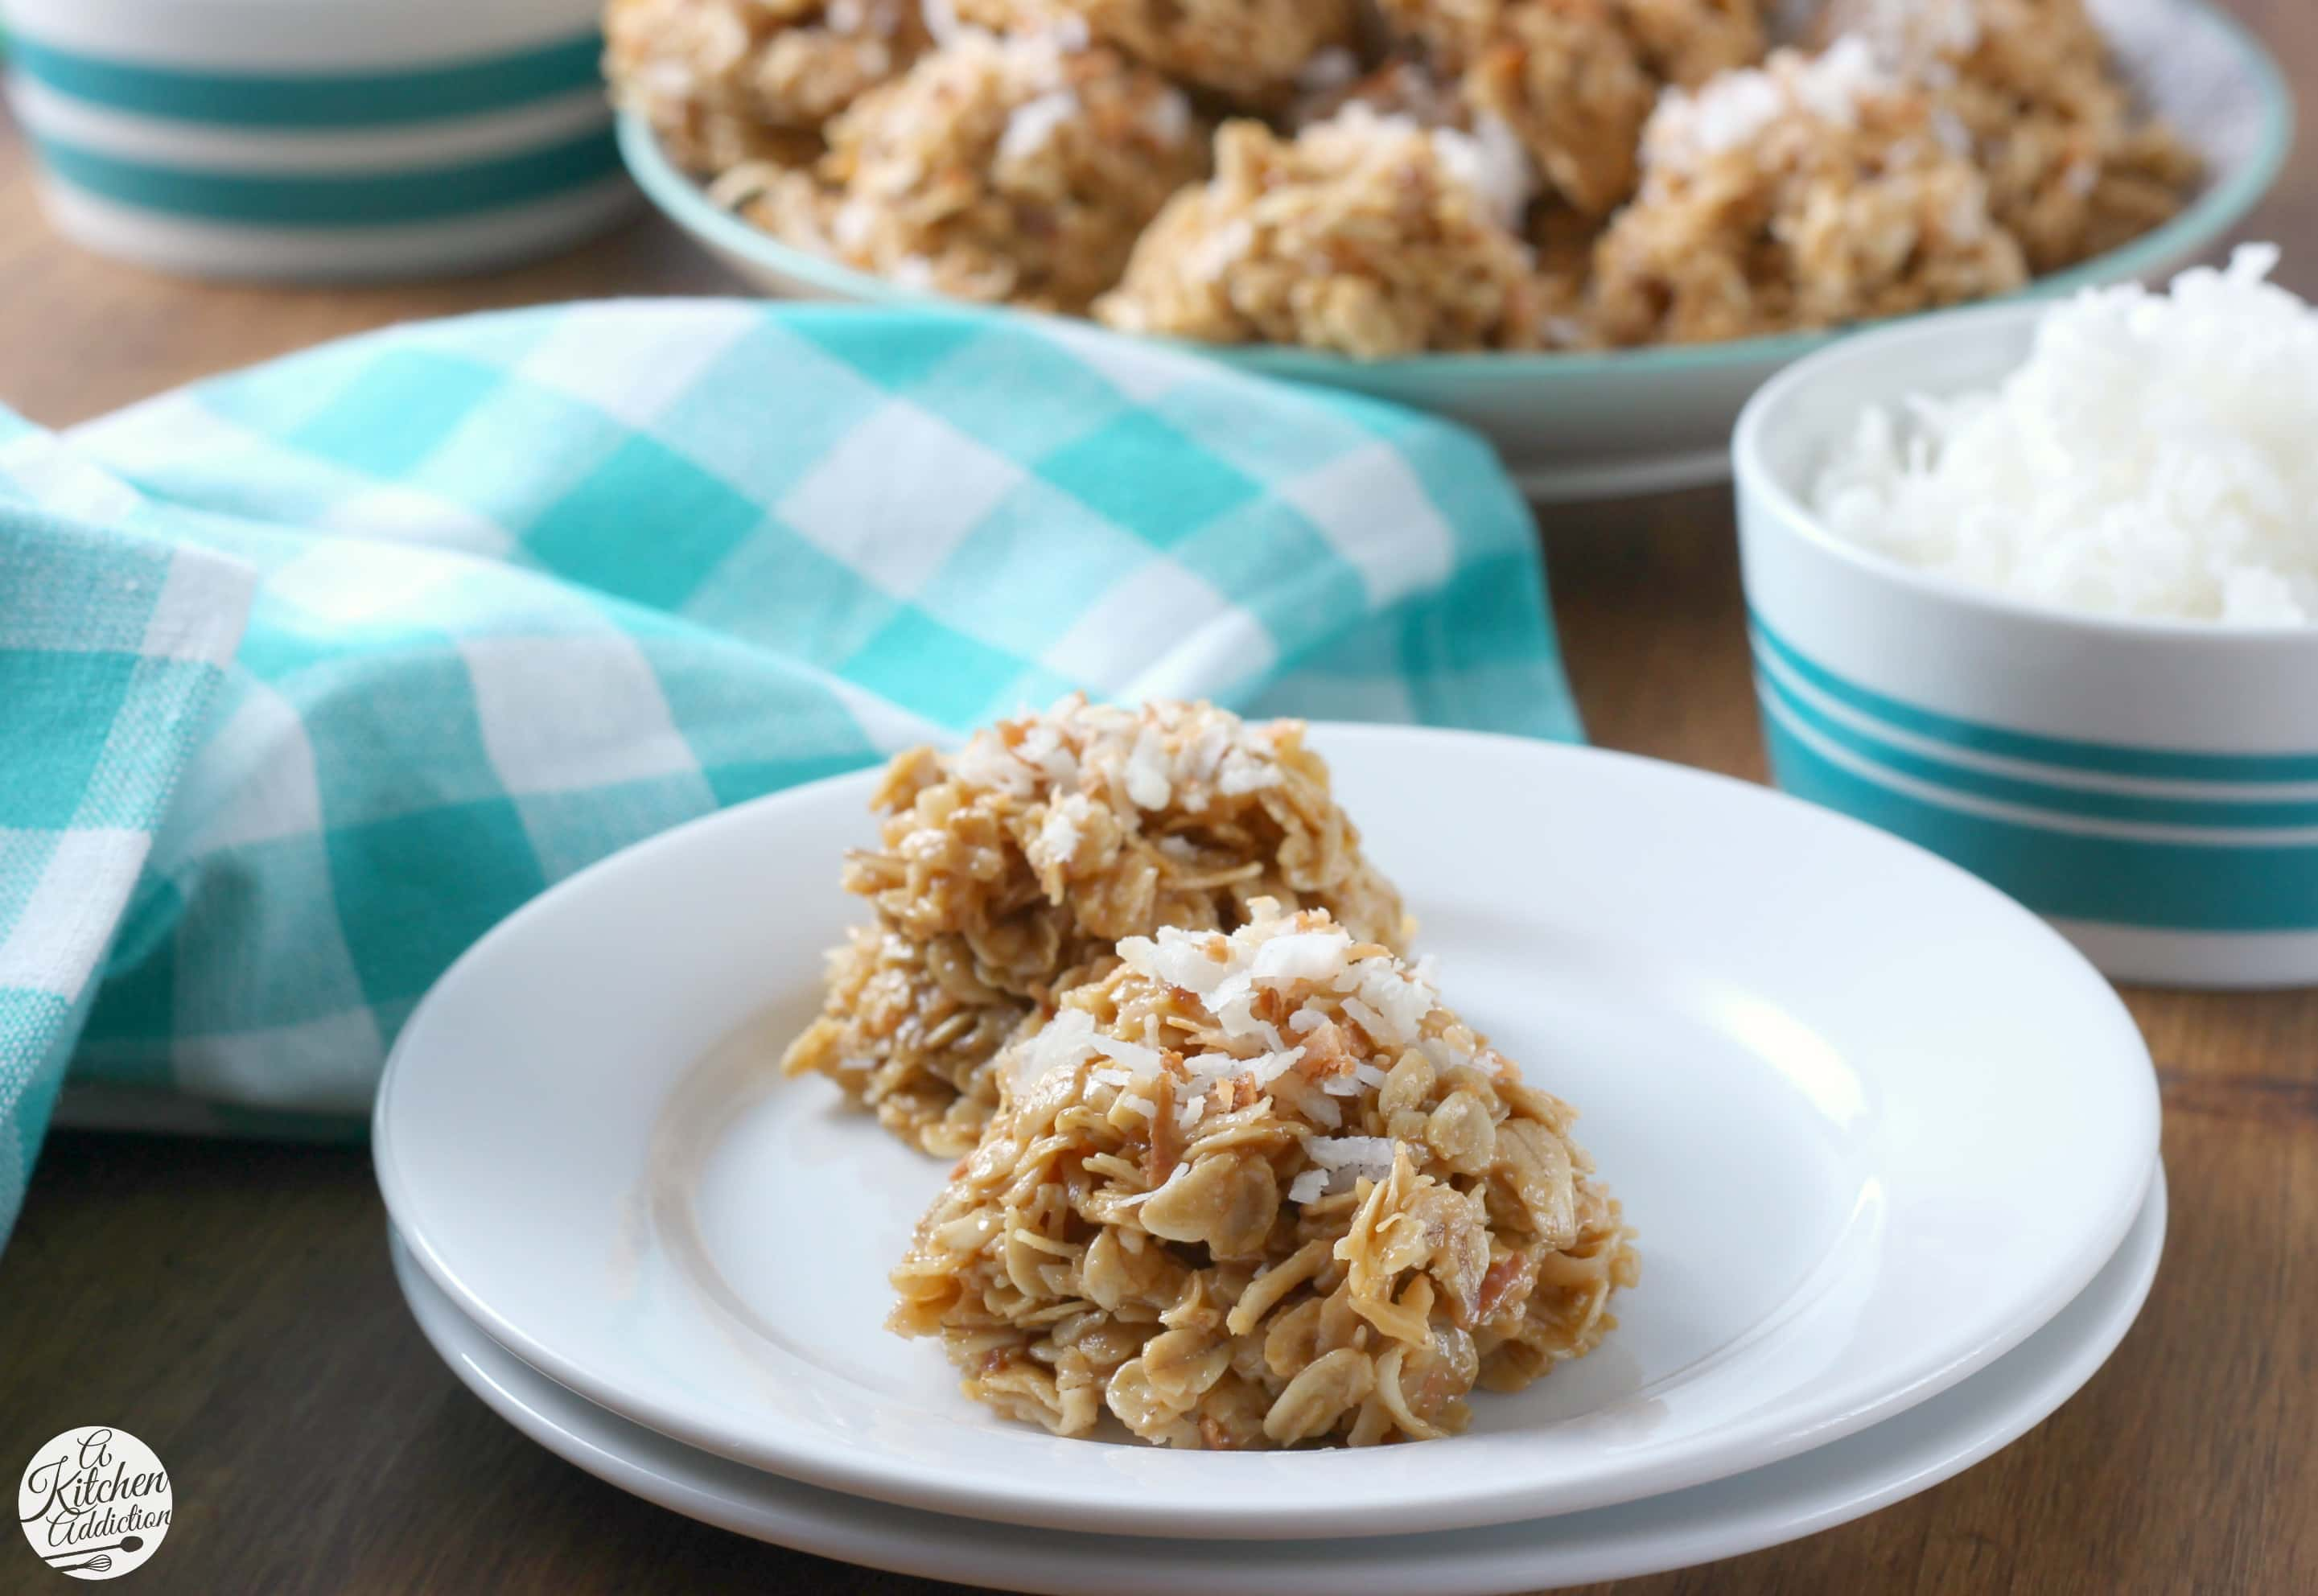 Lightened Up Coconut Peanut Butter No Bake Cookies Recipe from A Kitchen Addiction